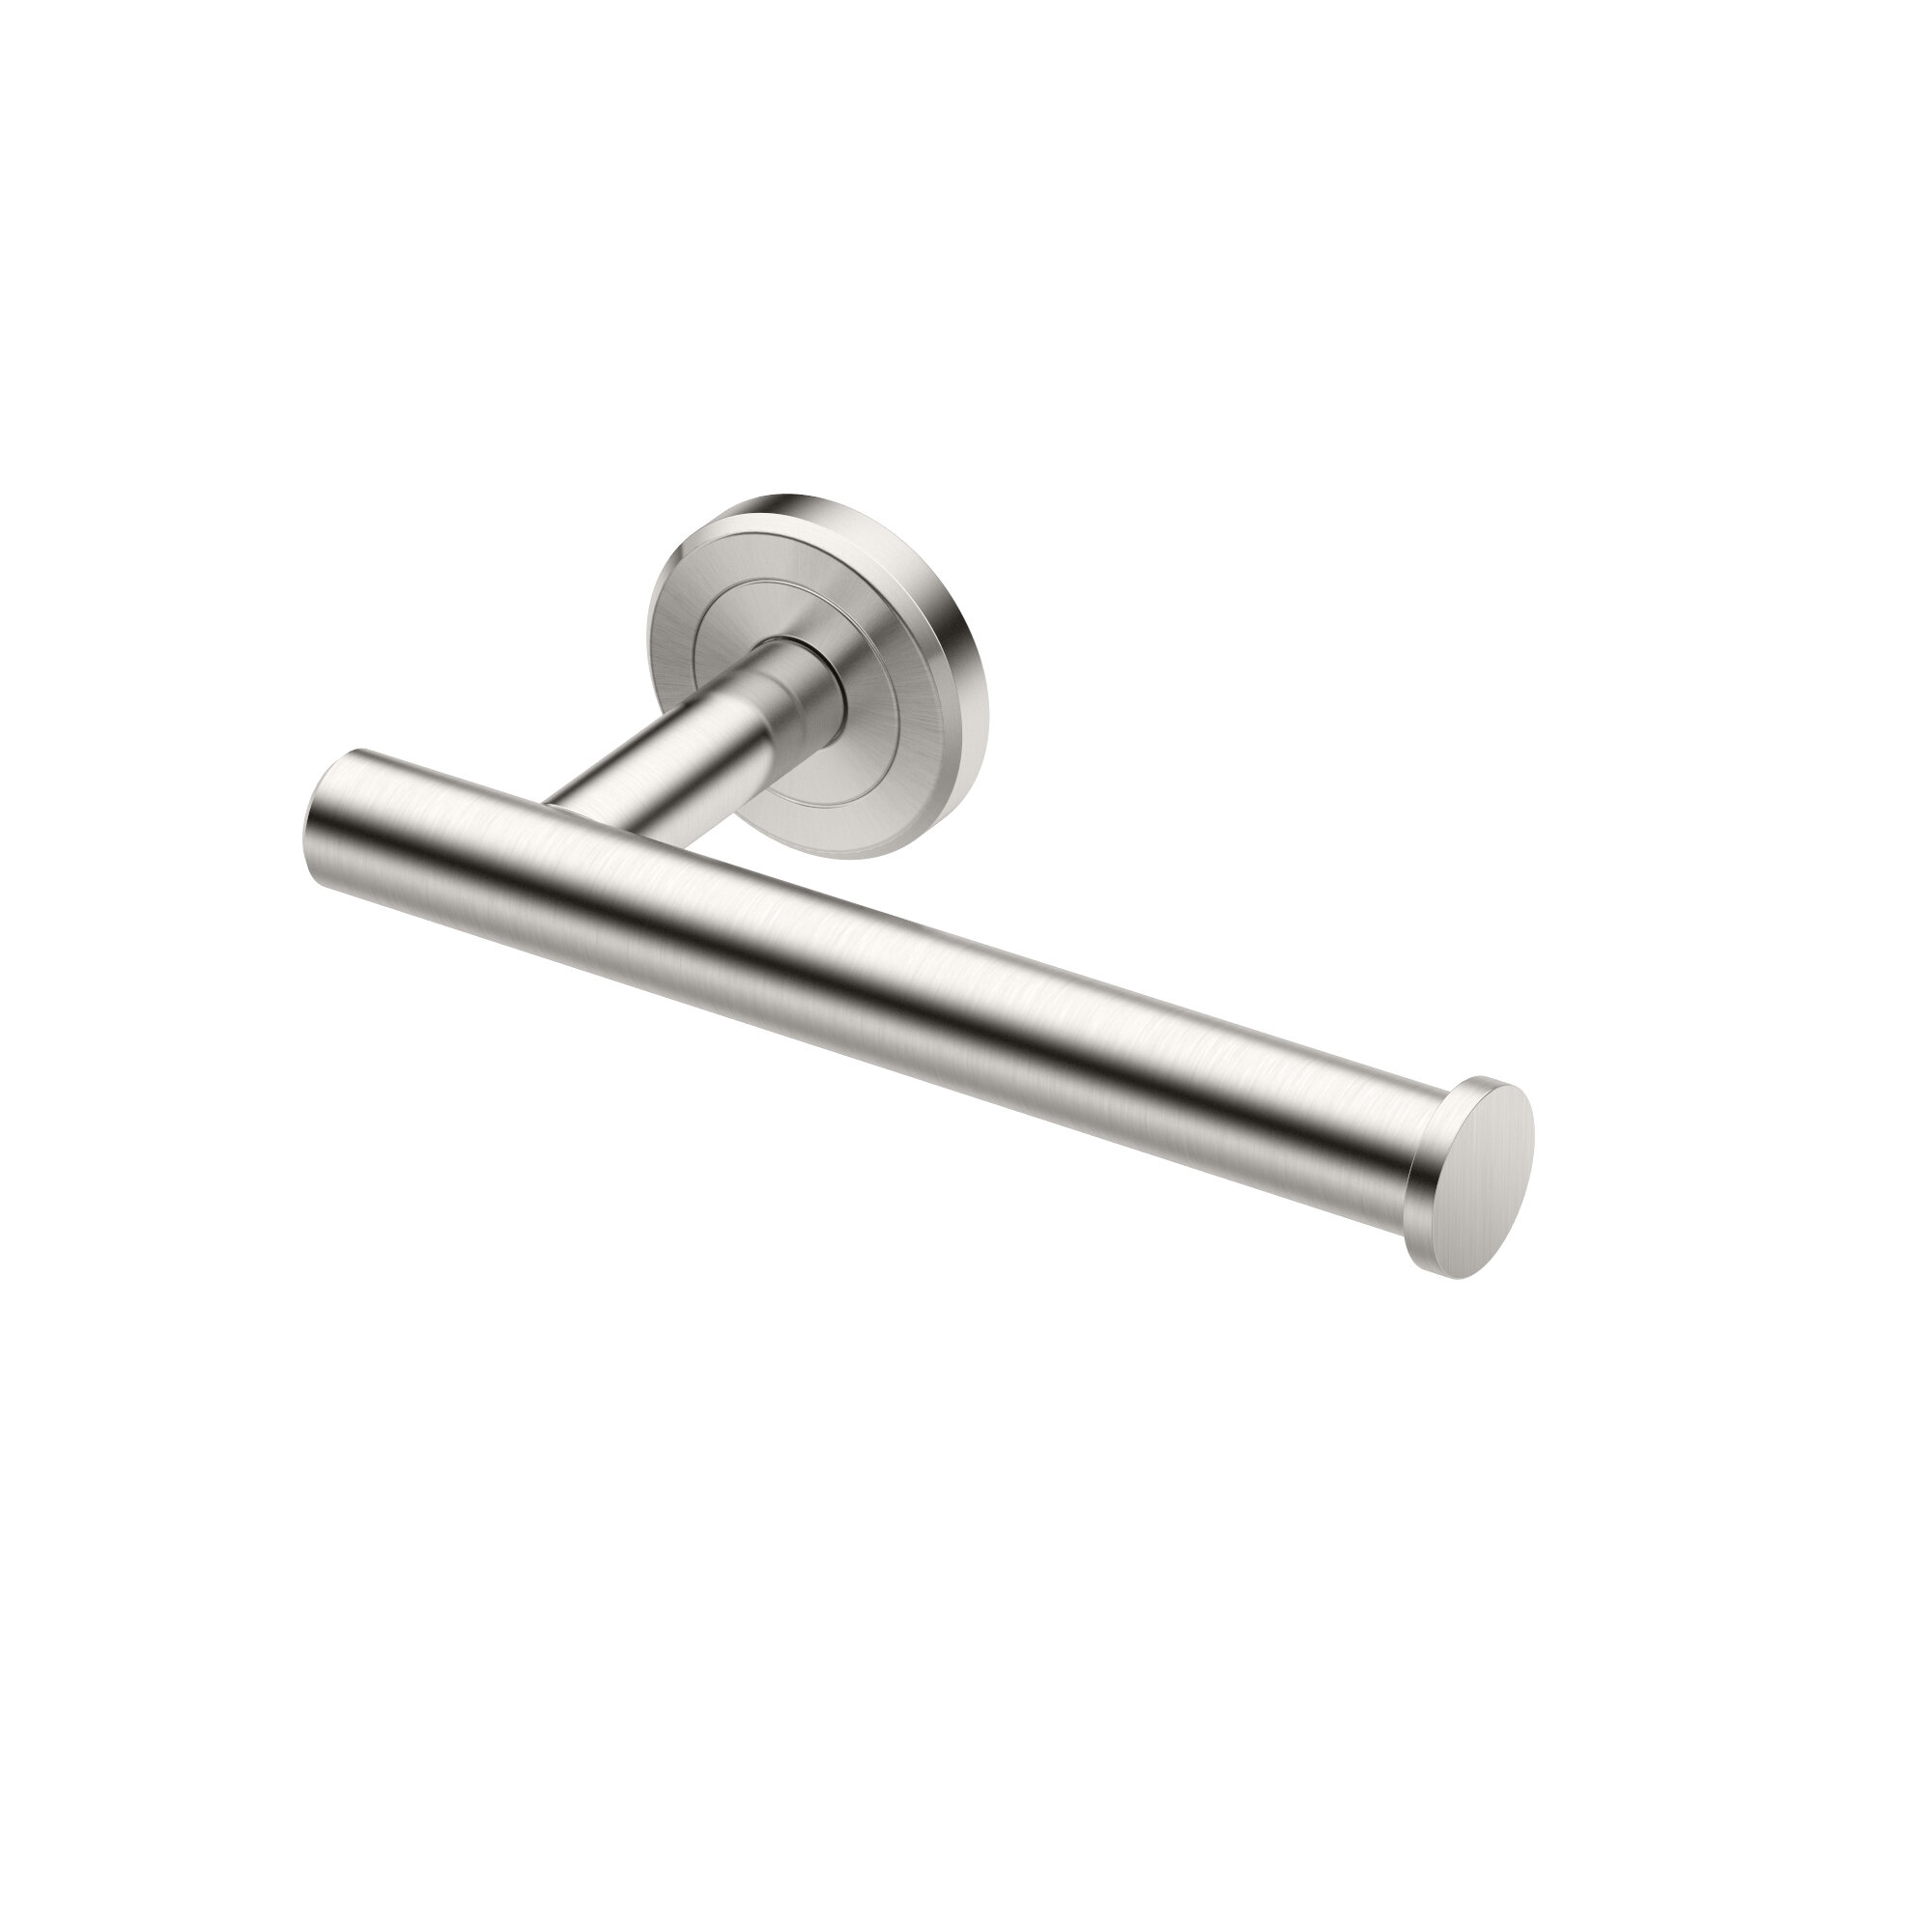 Polished Nickel Refresh Wall Mounted Toilet Paper Holder Finish